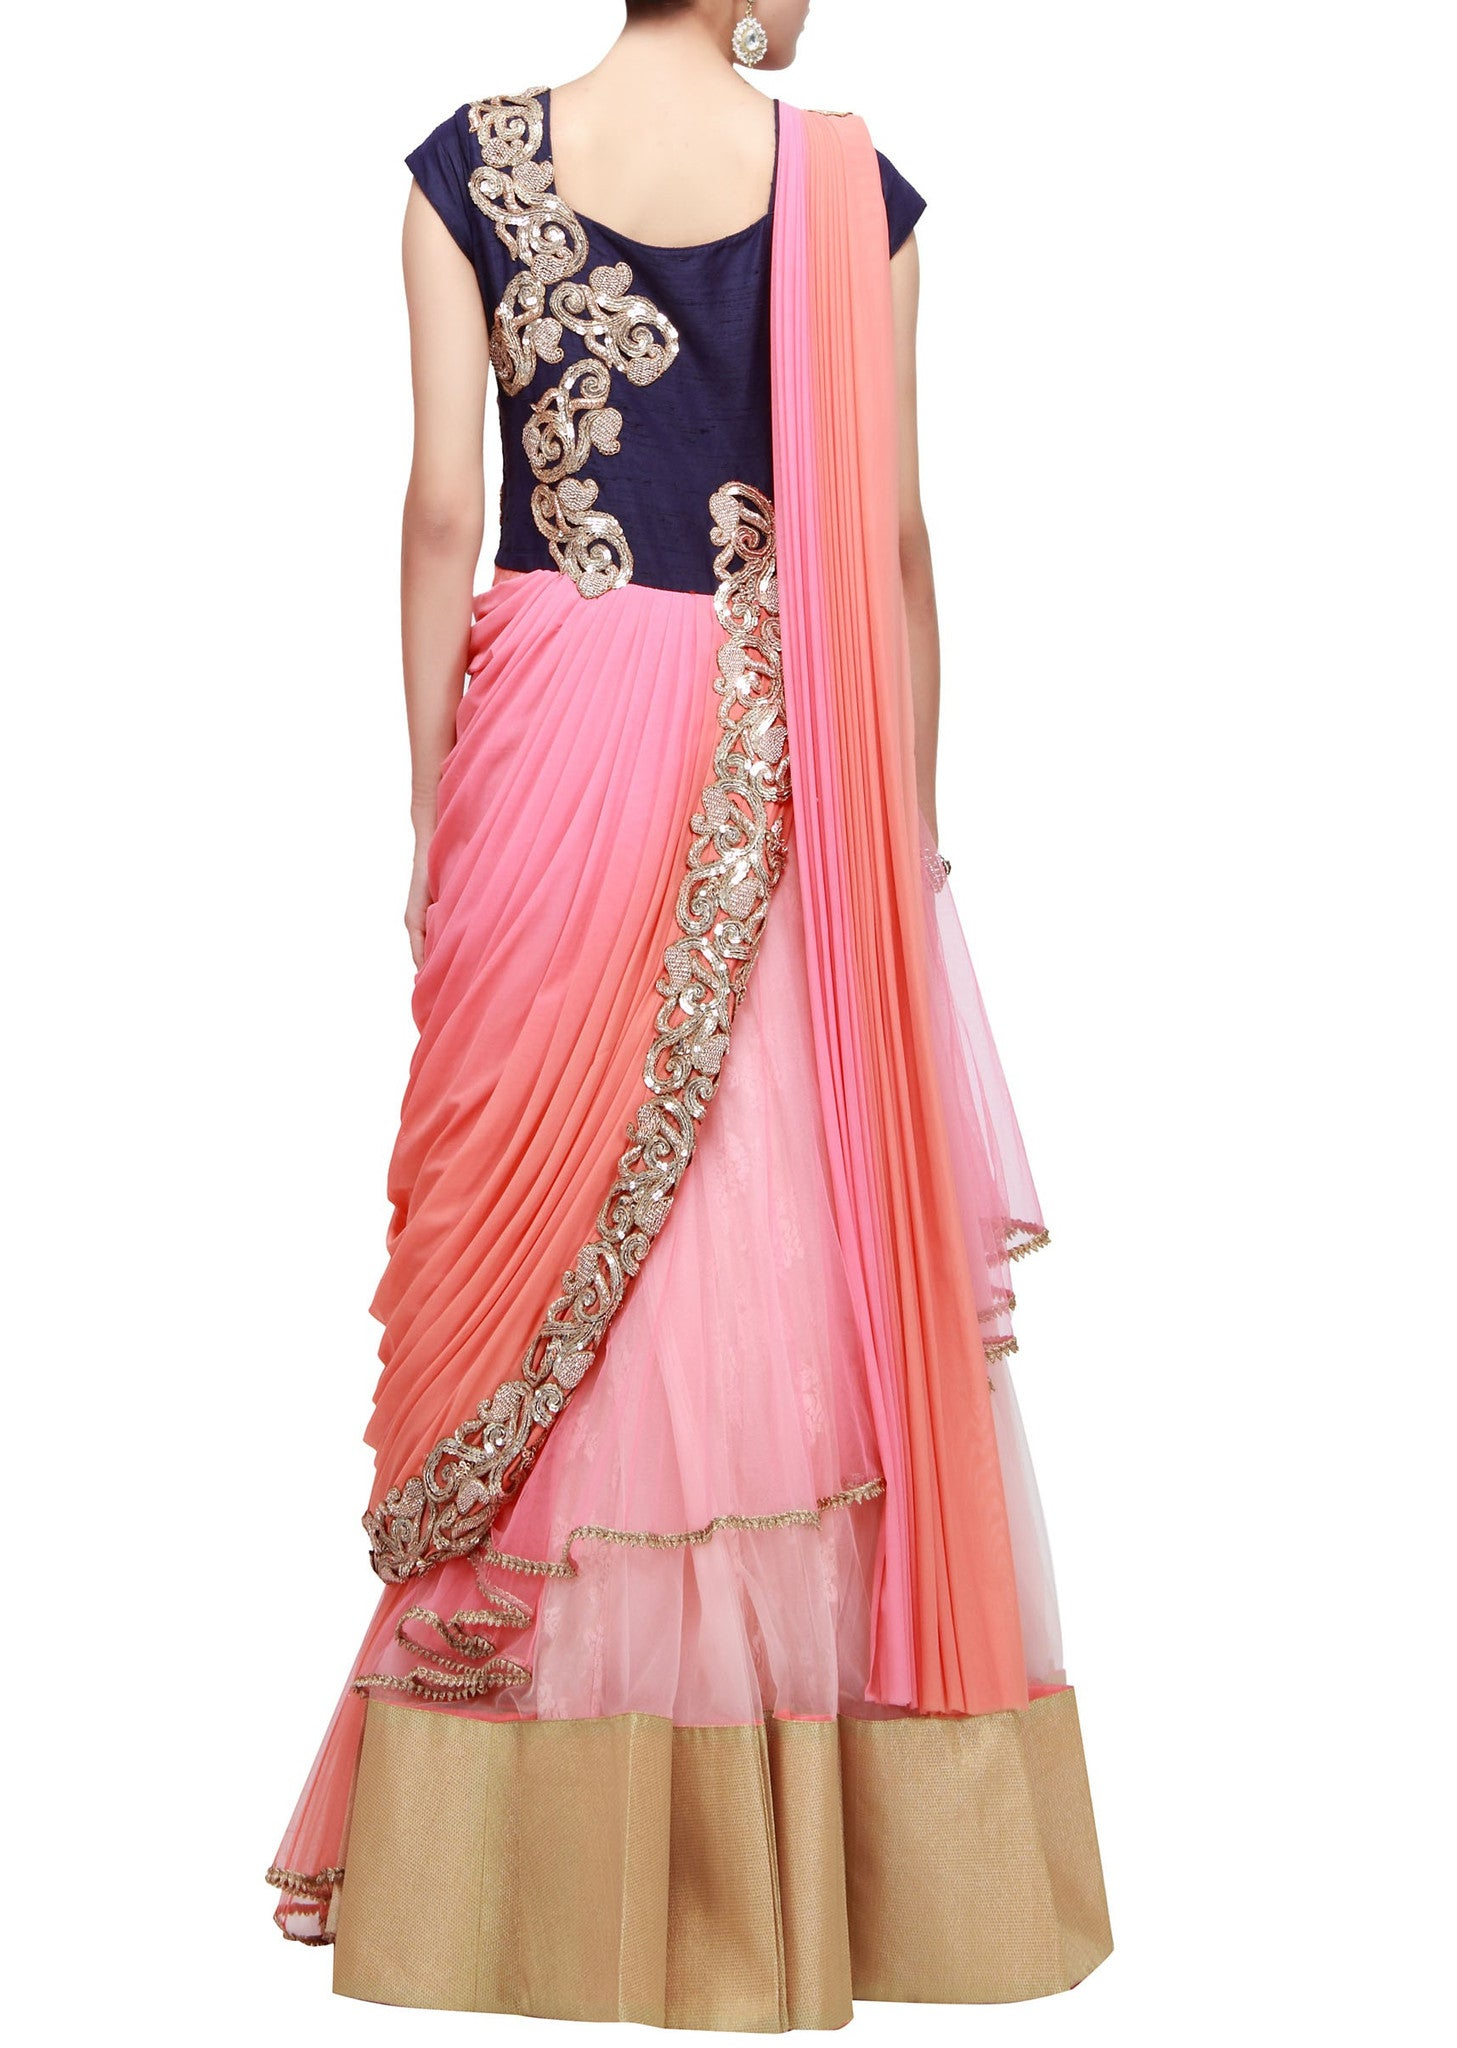 Peach and pink saree gown